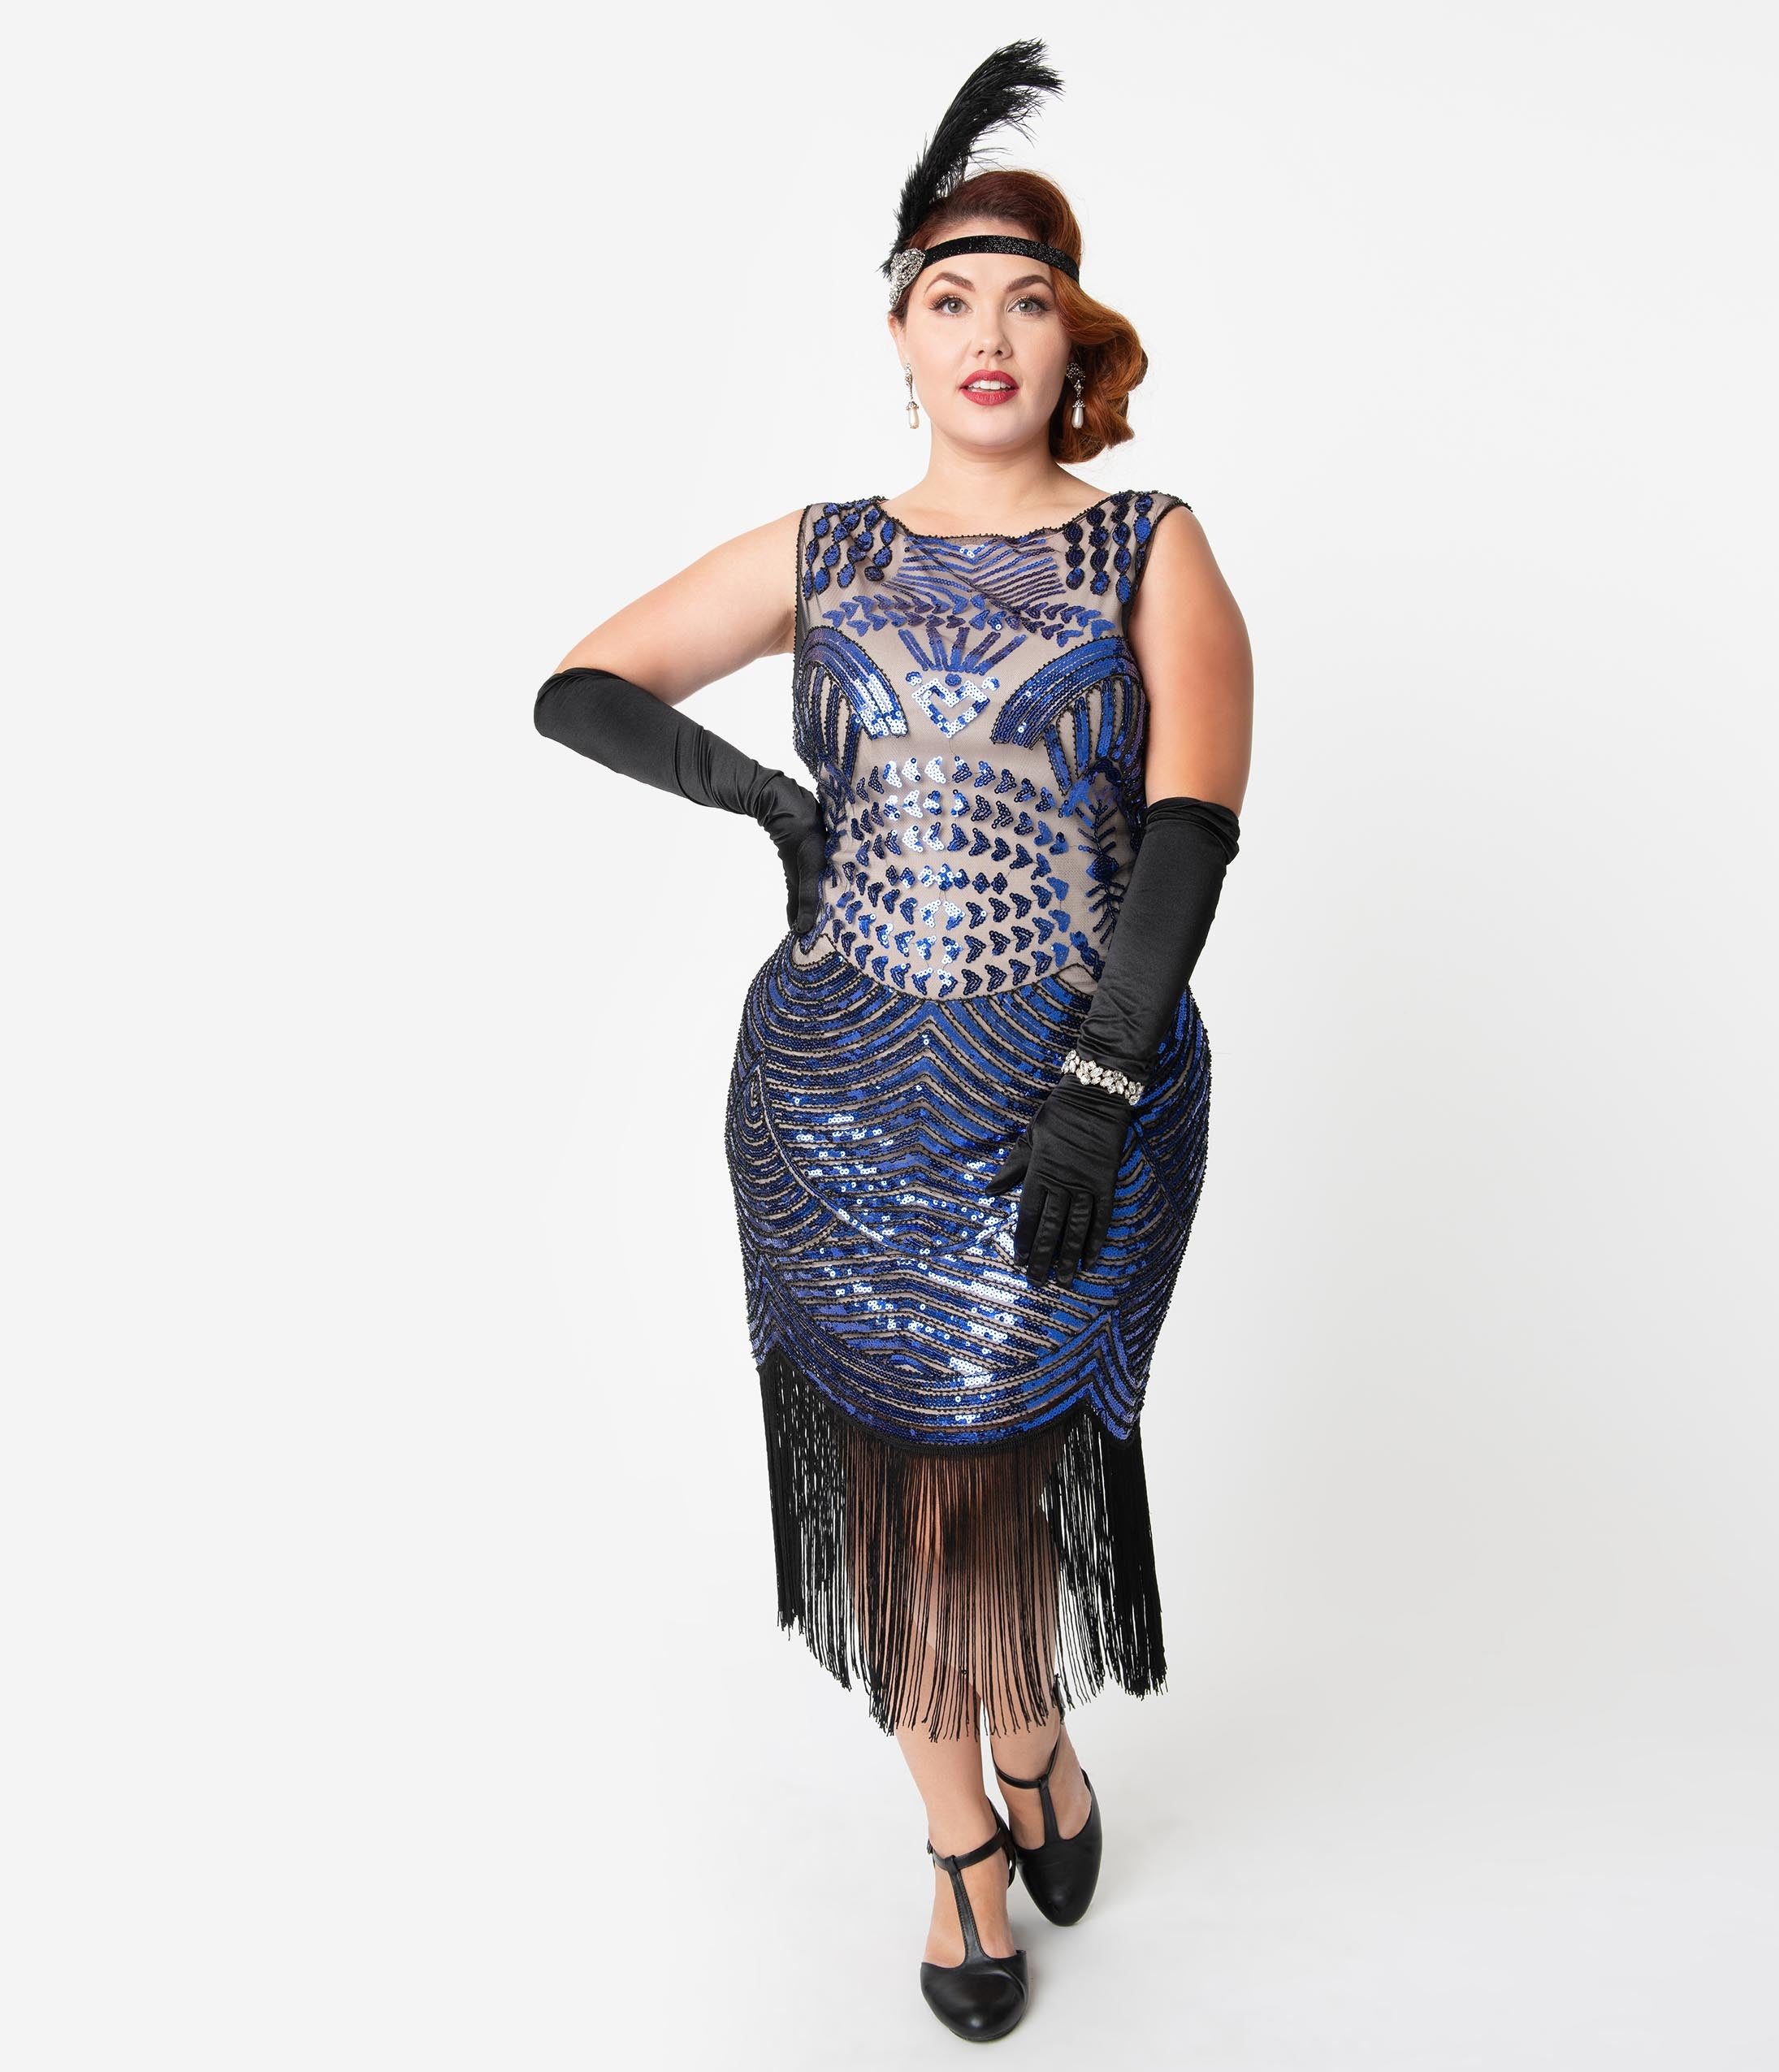 1920s Costumes: Flapper, Great Gatsby, Gangster Girl Unique Vintage Plus Size Beige  Royal Blue Sequin Rouen Fringe Flapper Dress $98.00 AT vintagedancer.com